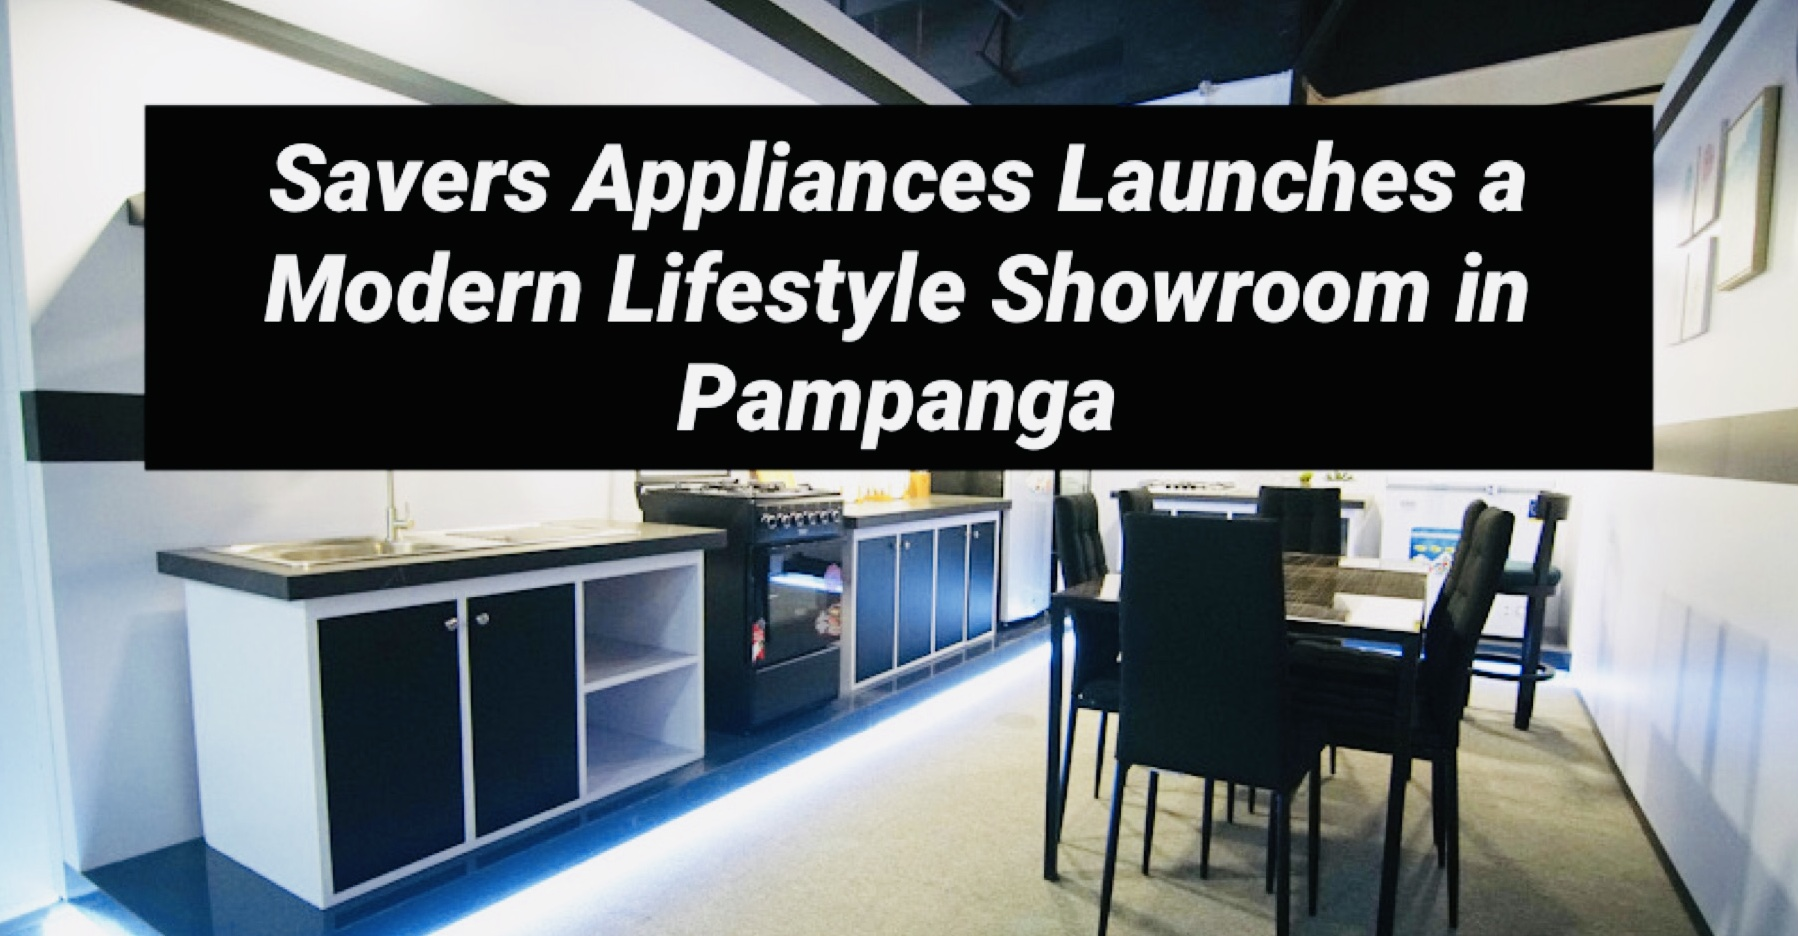 Savers Appliances Launches a Modern Lifestyle Showroom in Pampanga